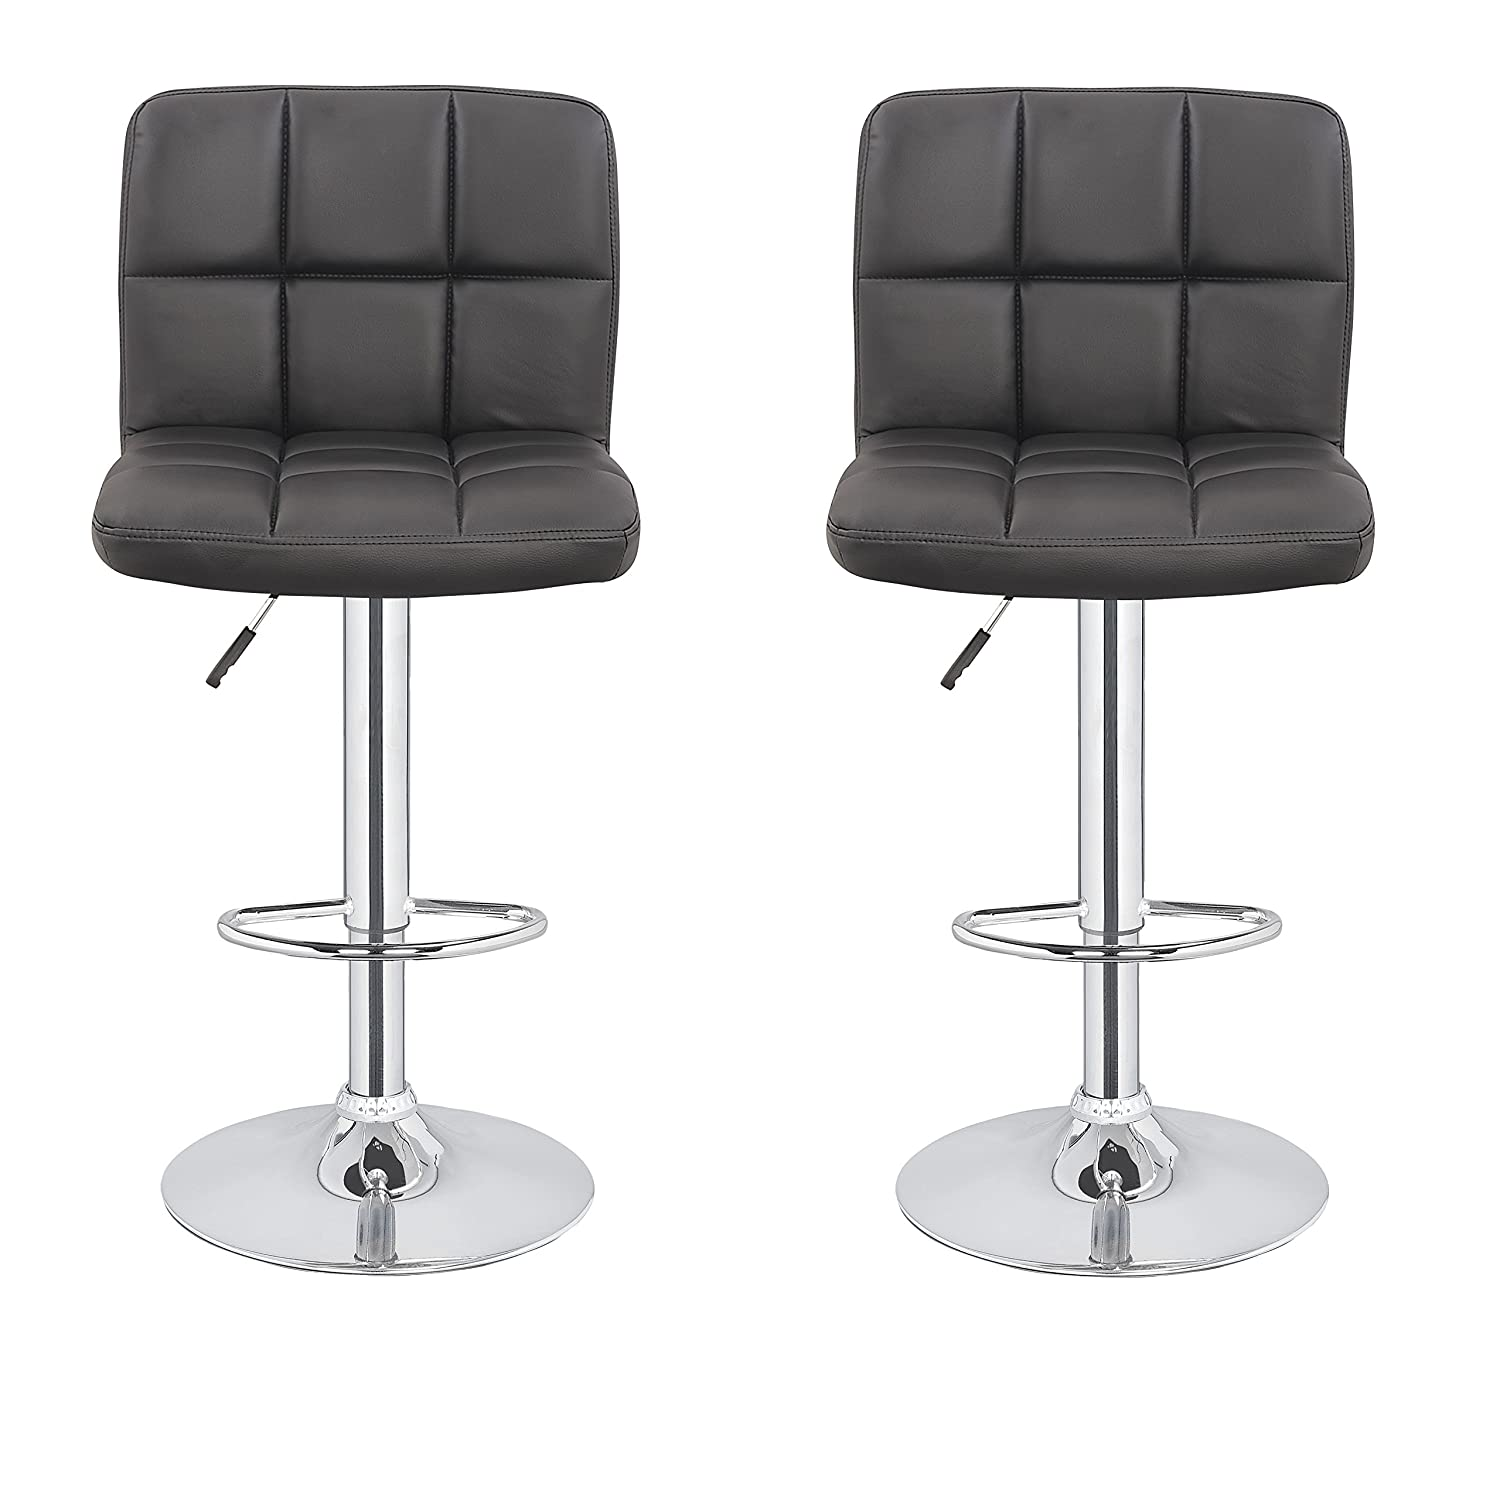 Unique Swivel Leather Bar Stools with Back